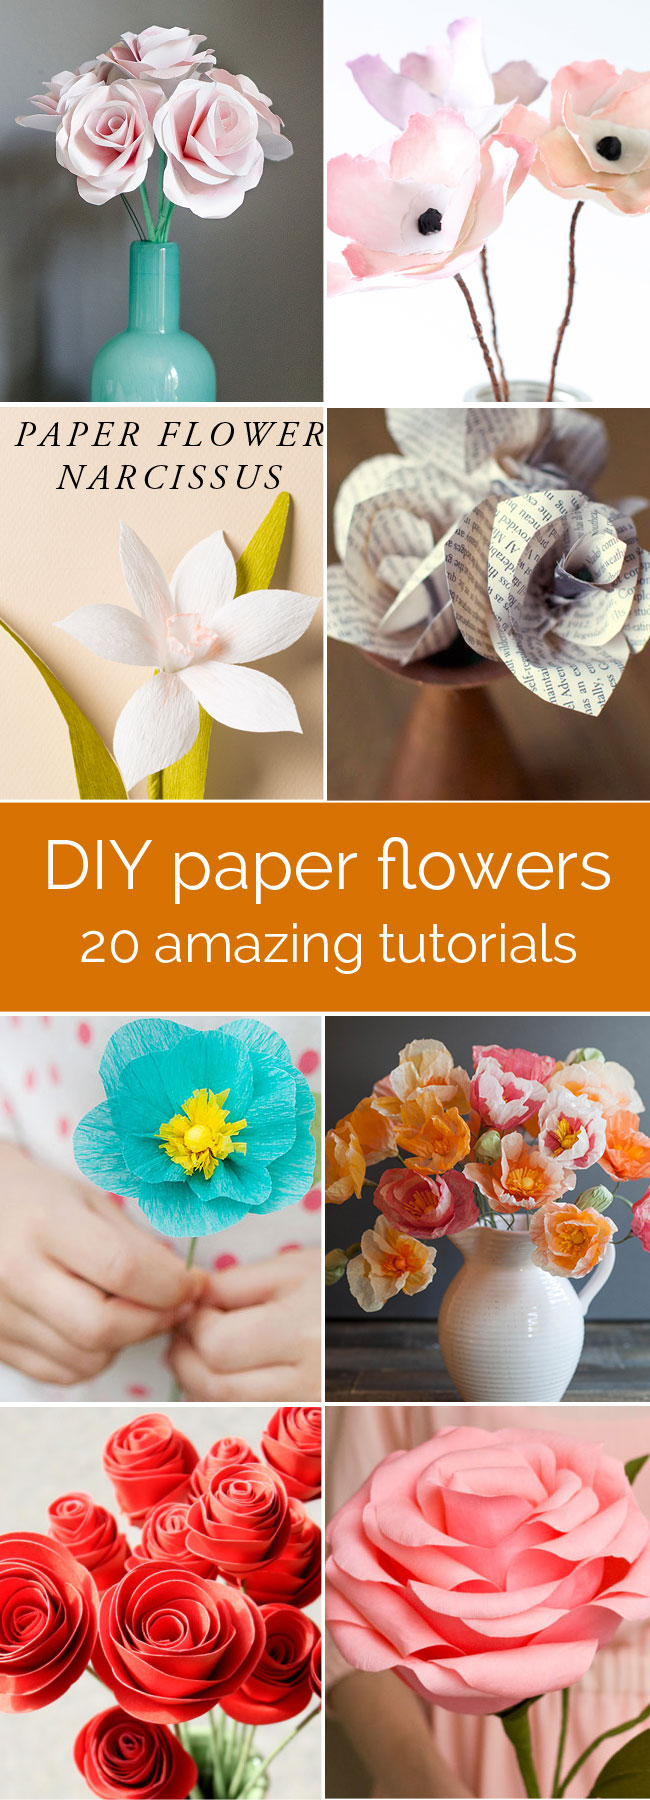 20 diy paper flower tutorials how to make paper flowers amazing collection of diy paper flower tutorials these look so real perfect for weddings mightylinksfo